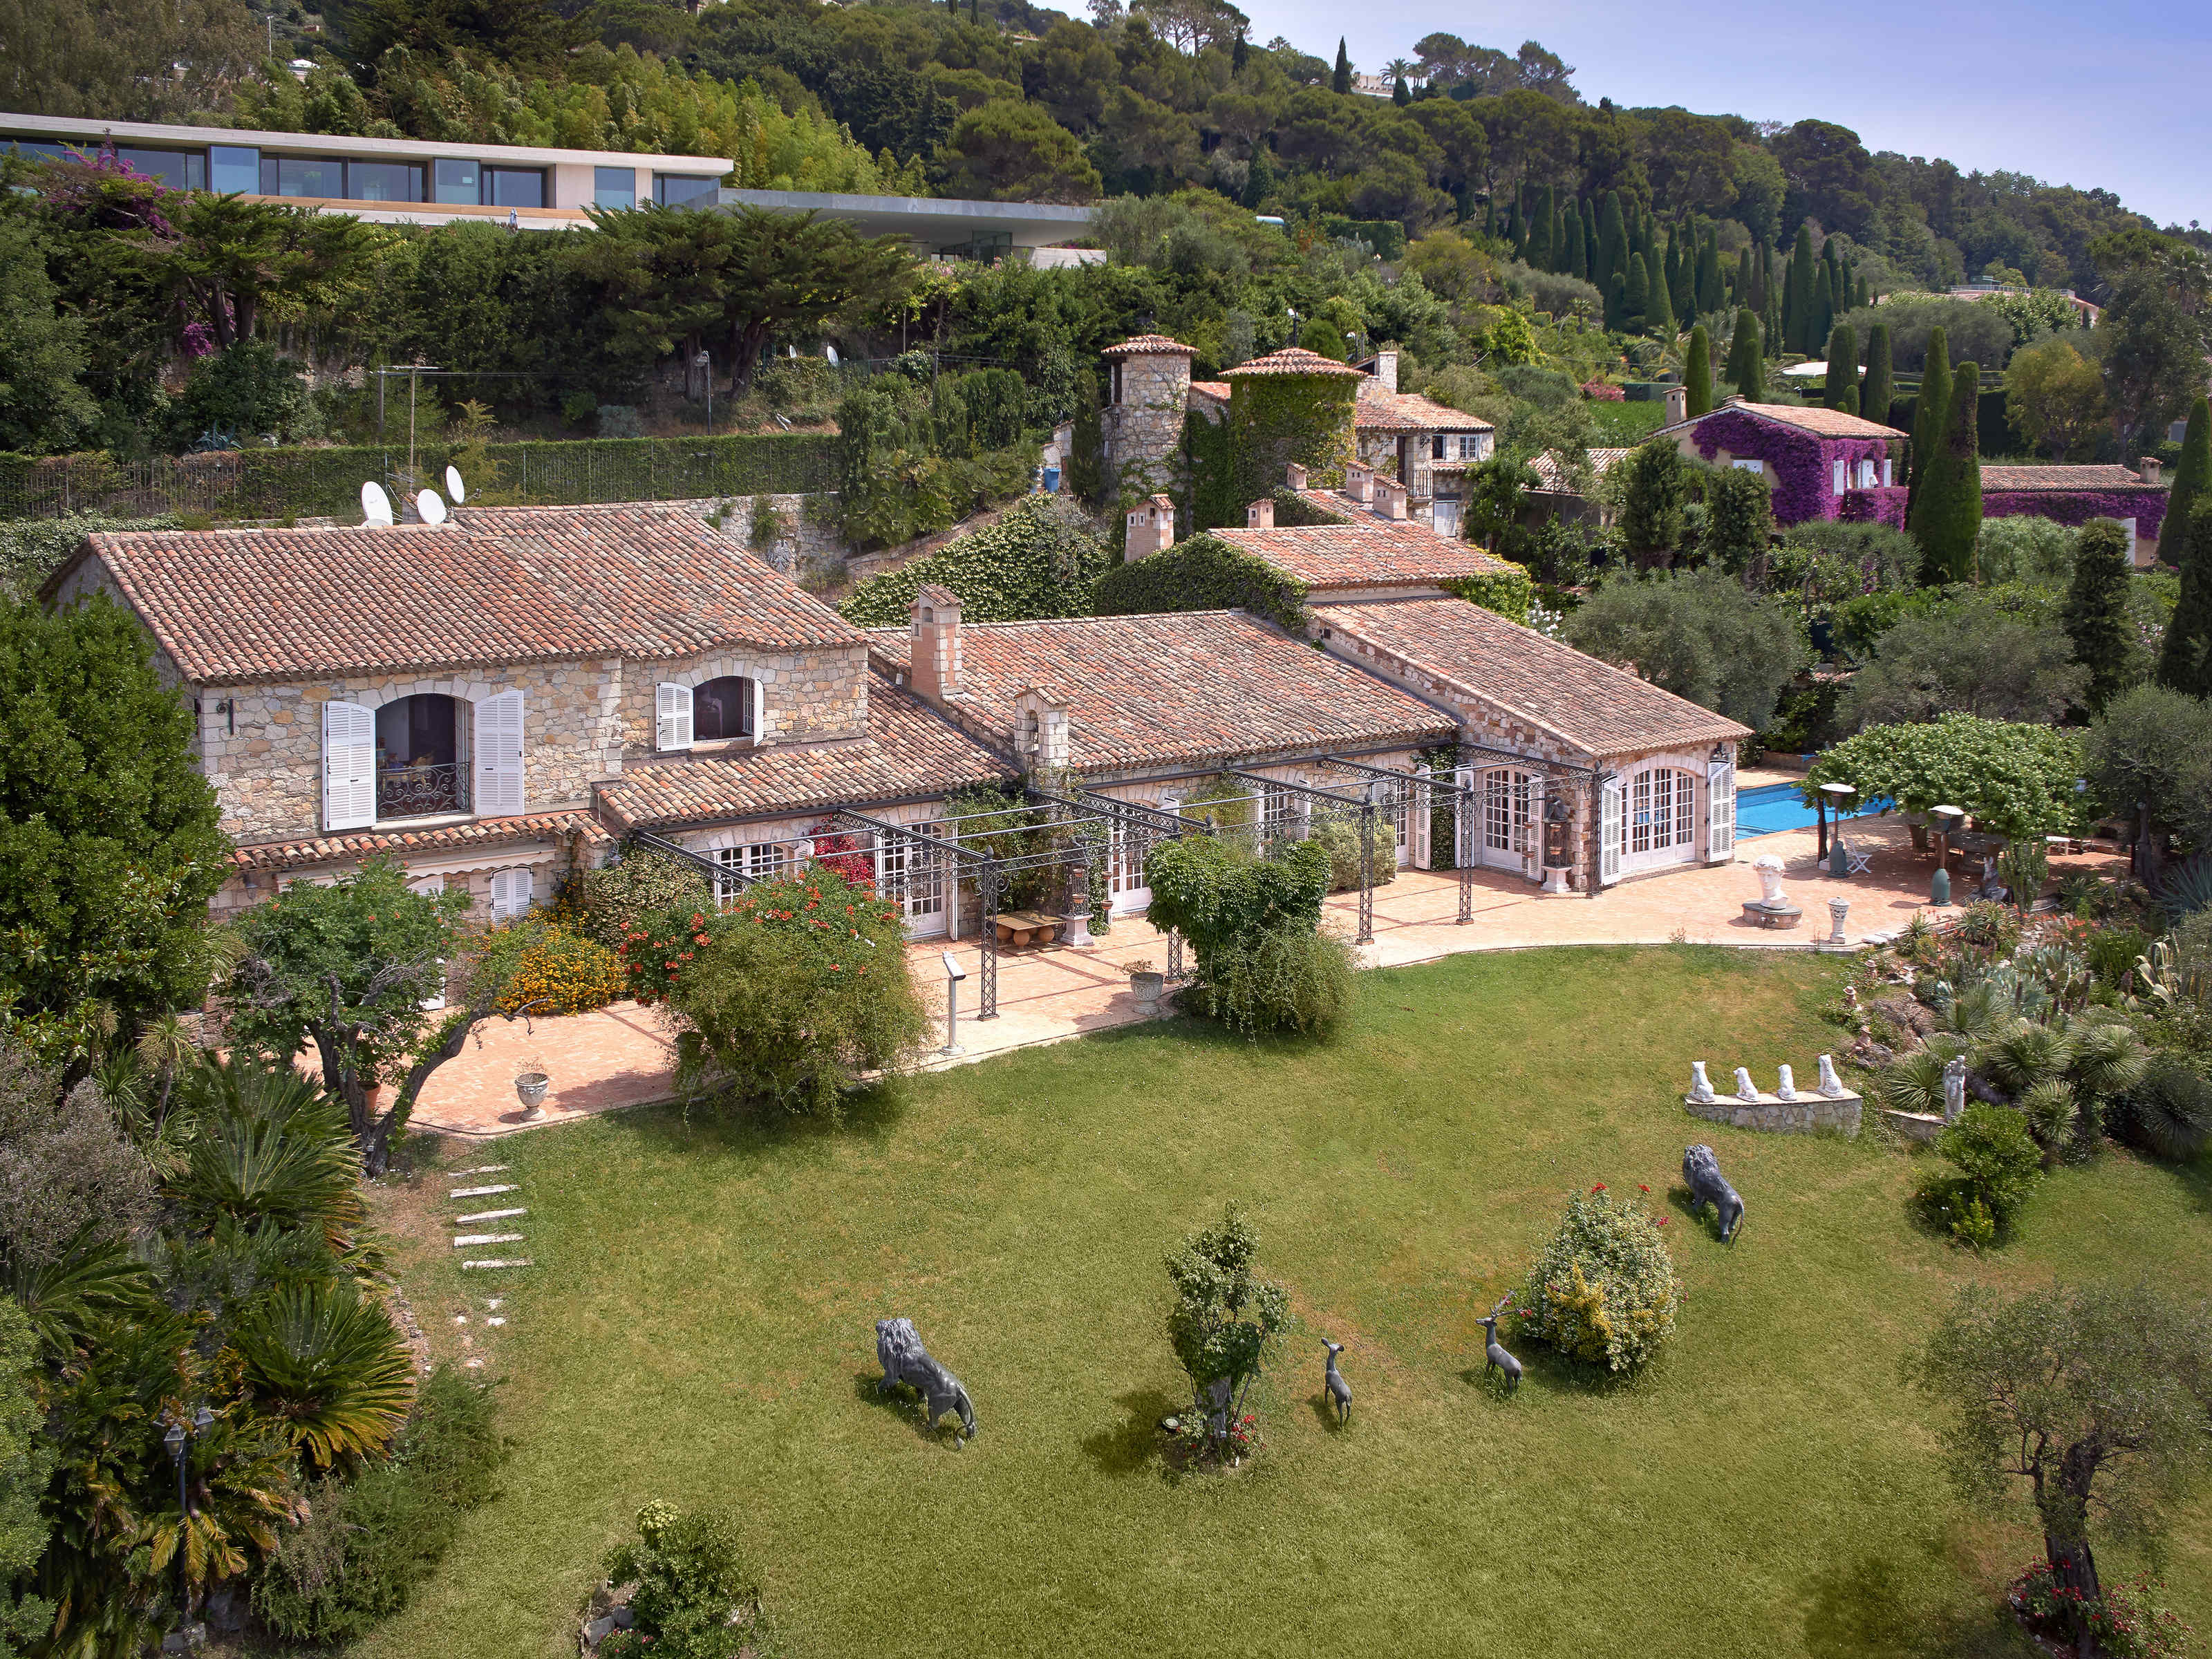 Single Family Home for Sale at Provencal property with stunning sea views Cannes Cannes, Provence-Alpes-Cote D'Azur 06400 France